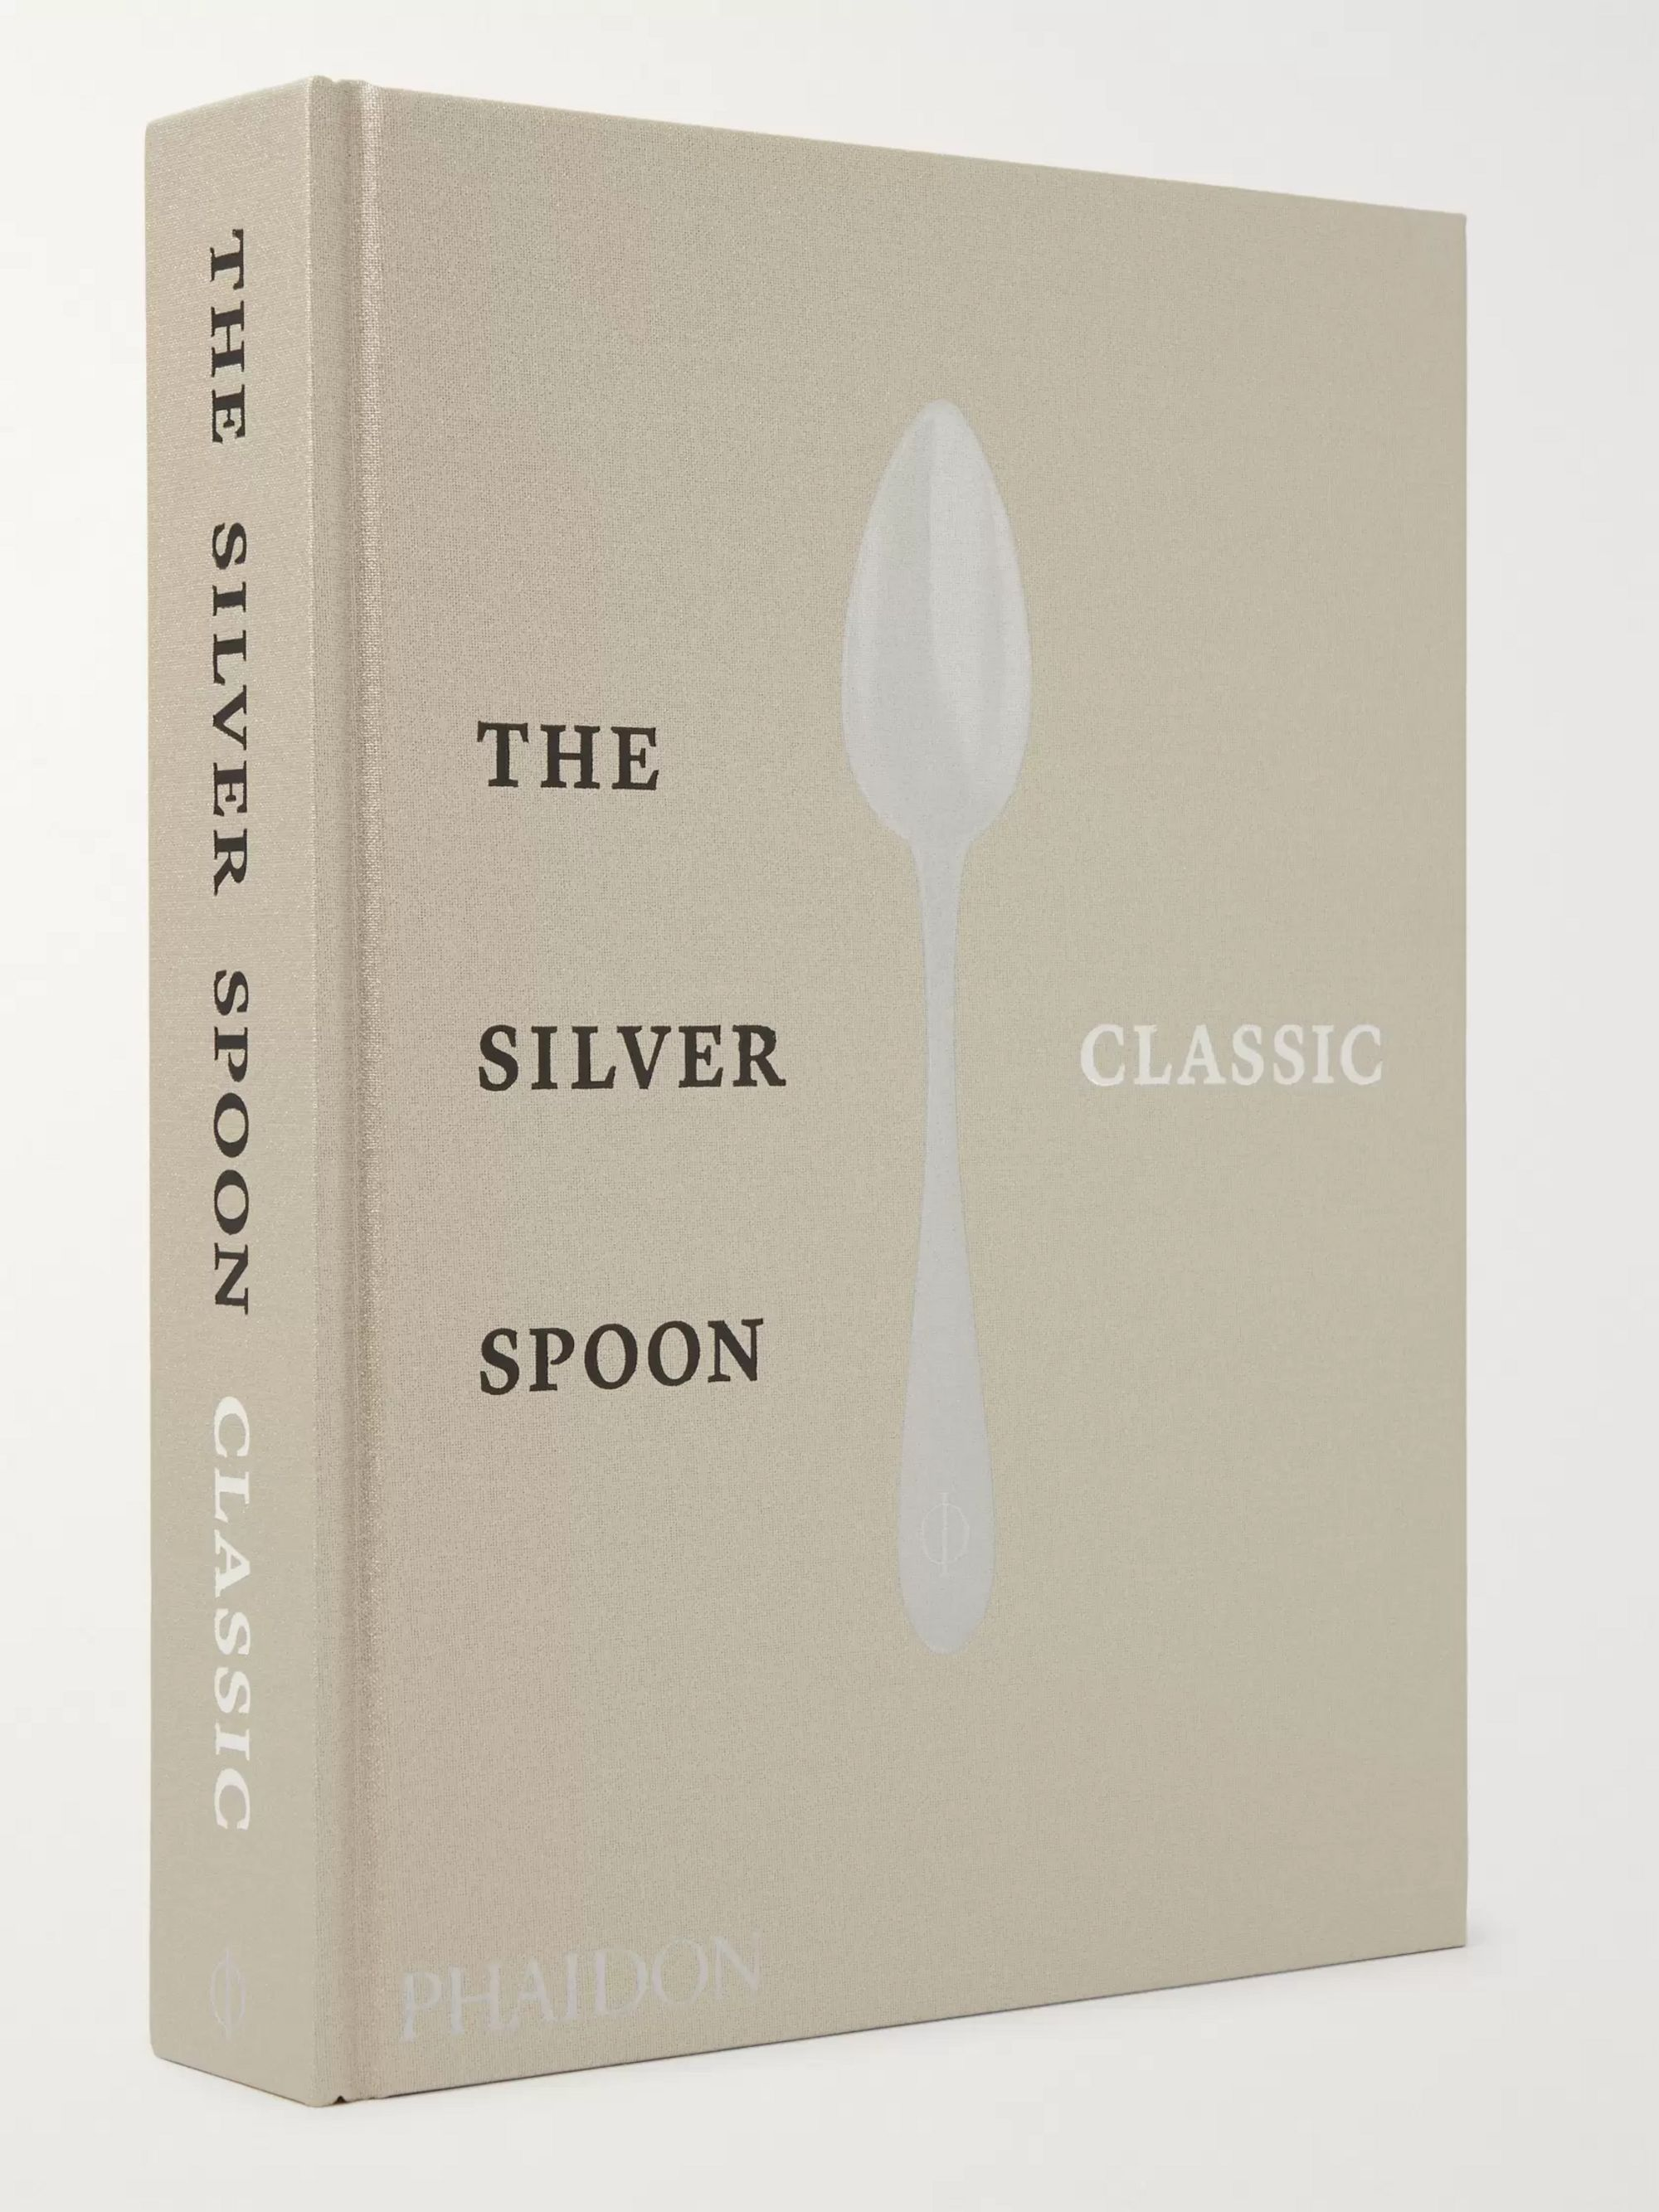 Phaidon The Silver Spoon Classic Hardcover Book